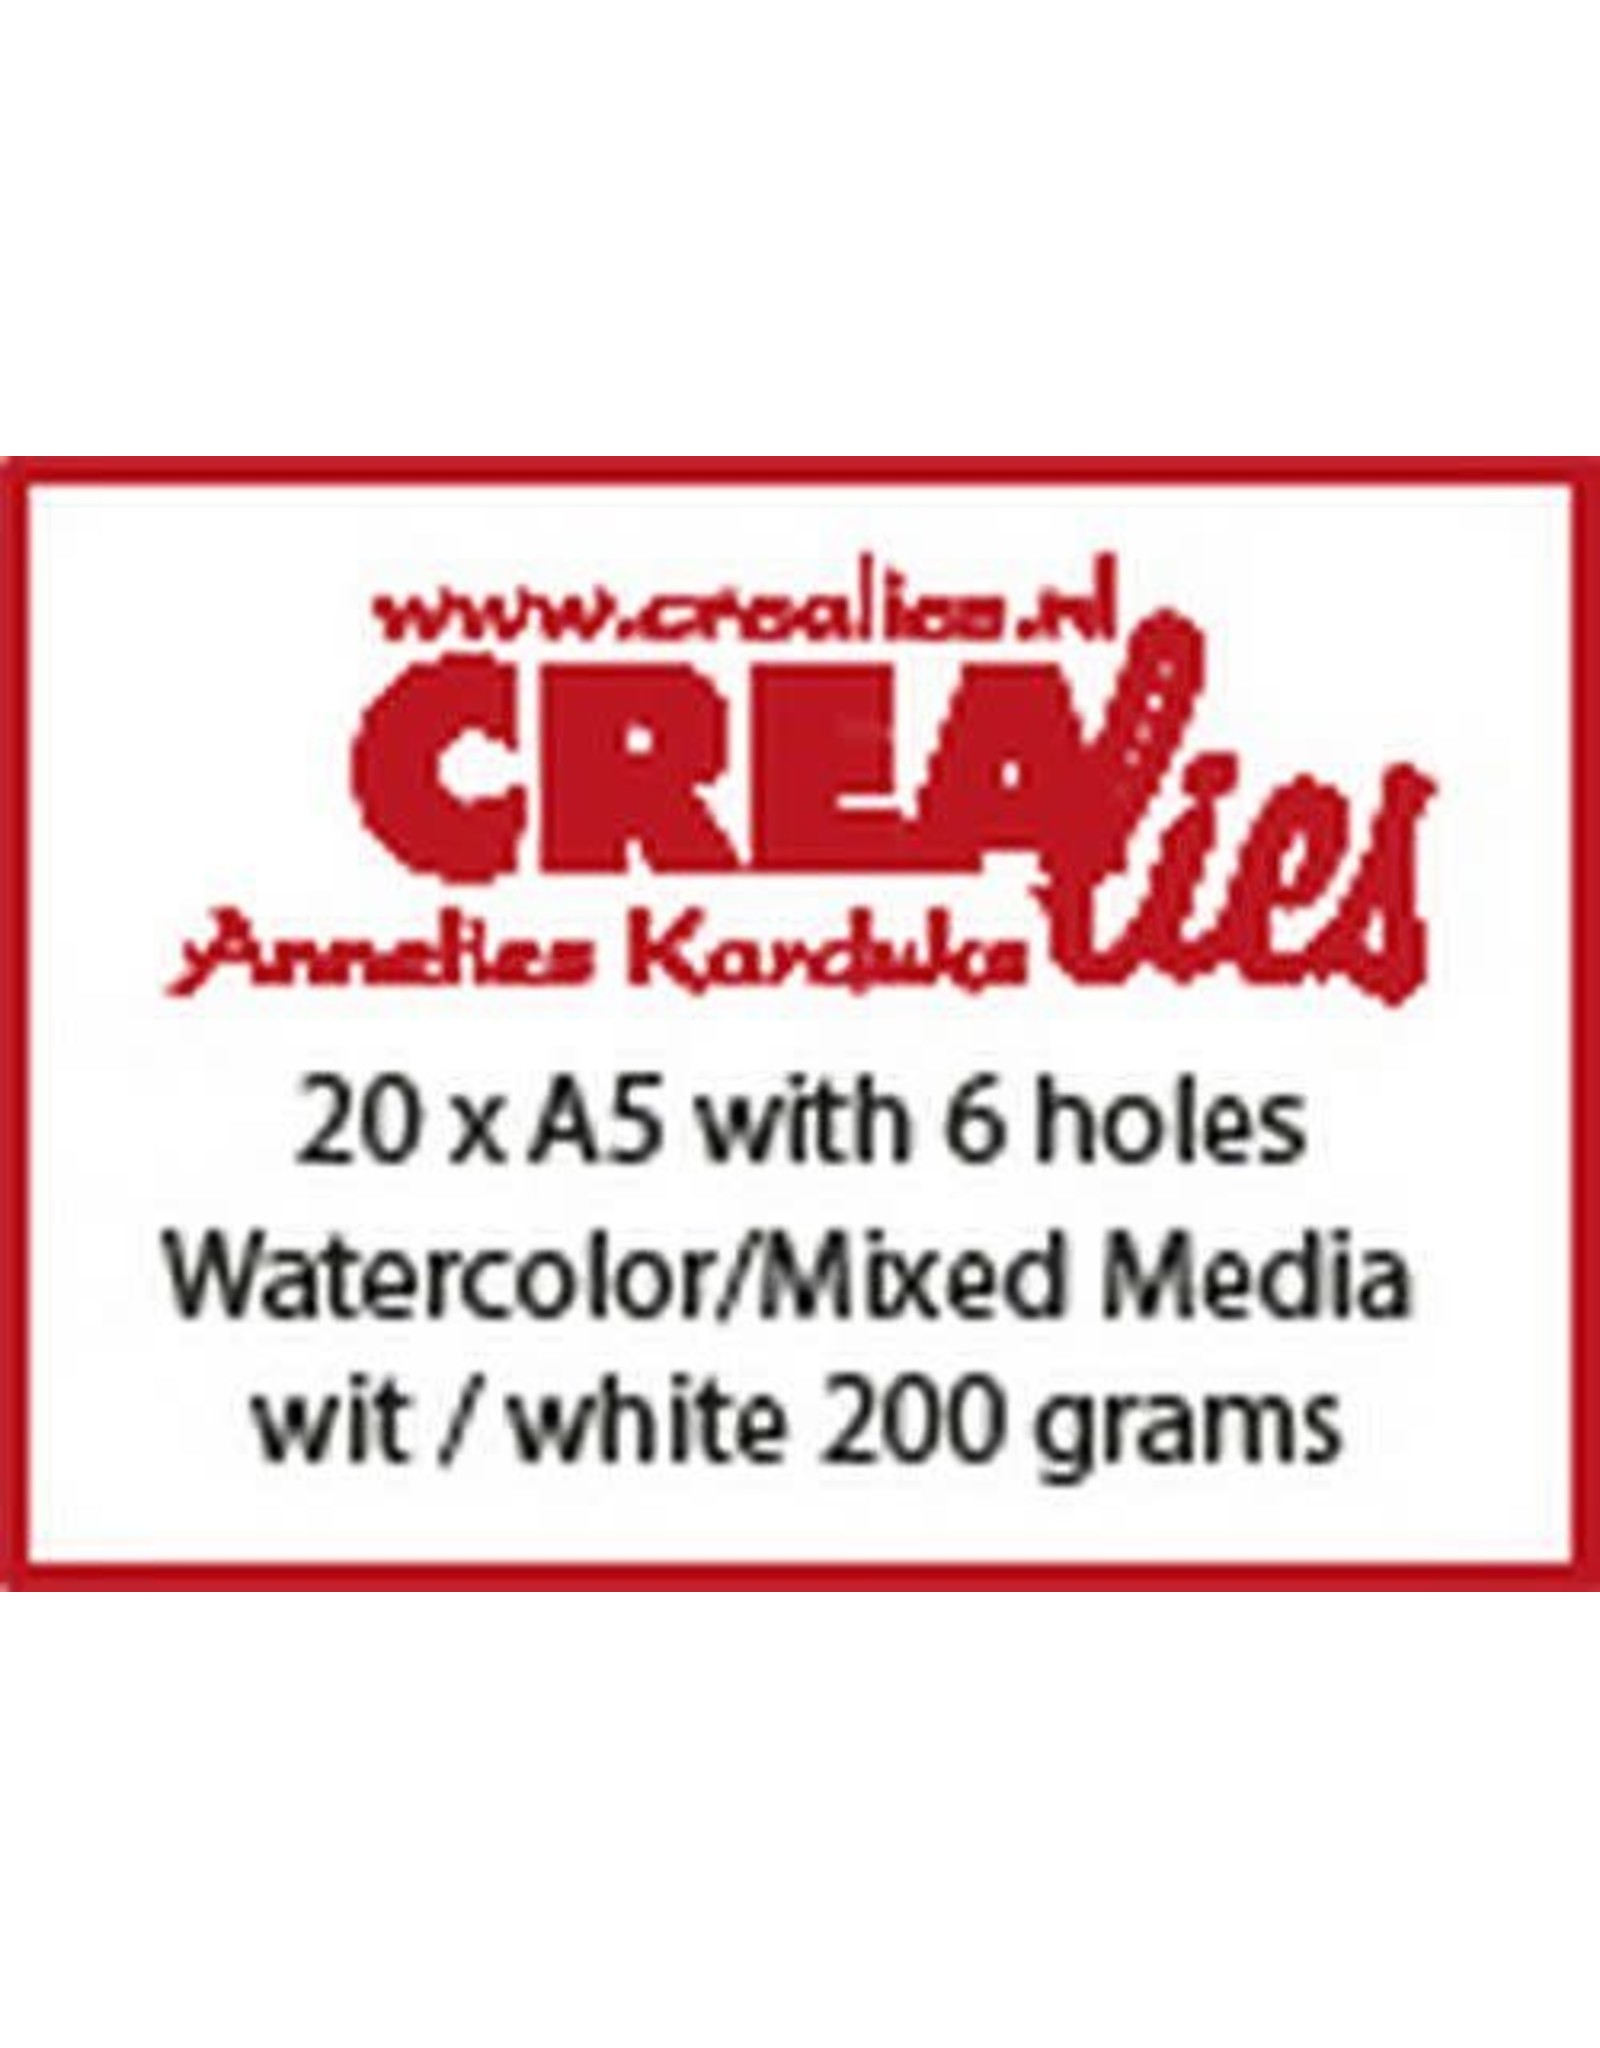 Crealies Crealies Basis A5 watercolor 200 grm (20x) CLBS204 A5 with 6 holes